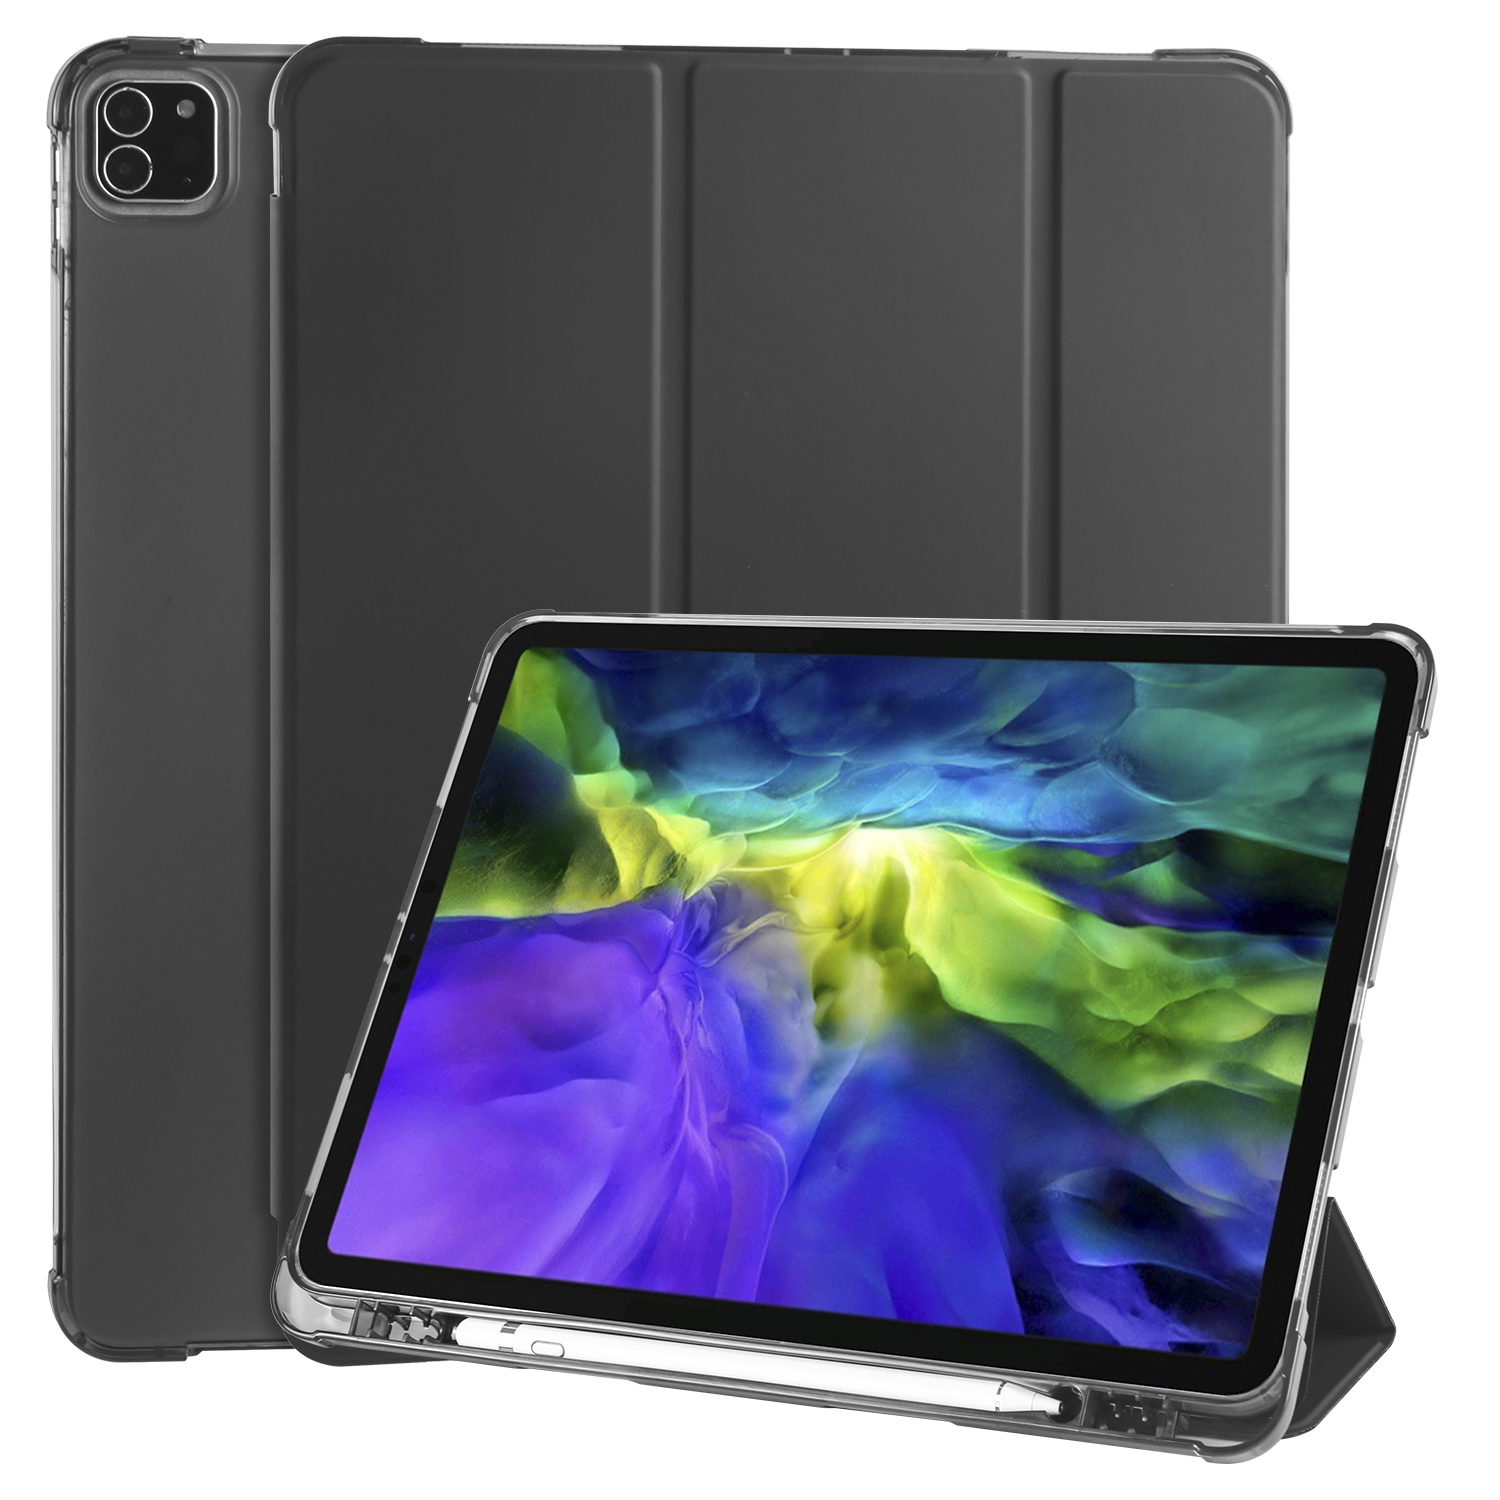 Black Black Smart Soft Shockproof Case for iPad Pro 12 9 2020 2018 3rd 4th Generation with Pen